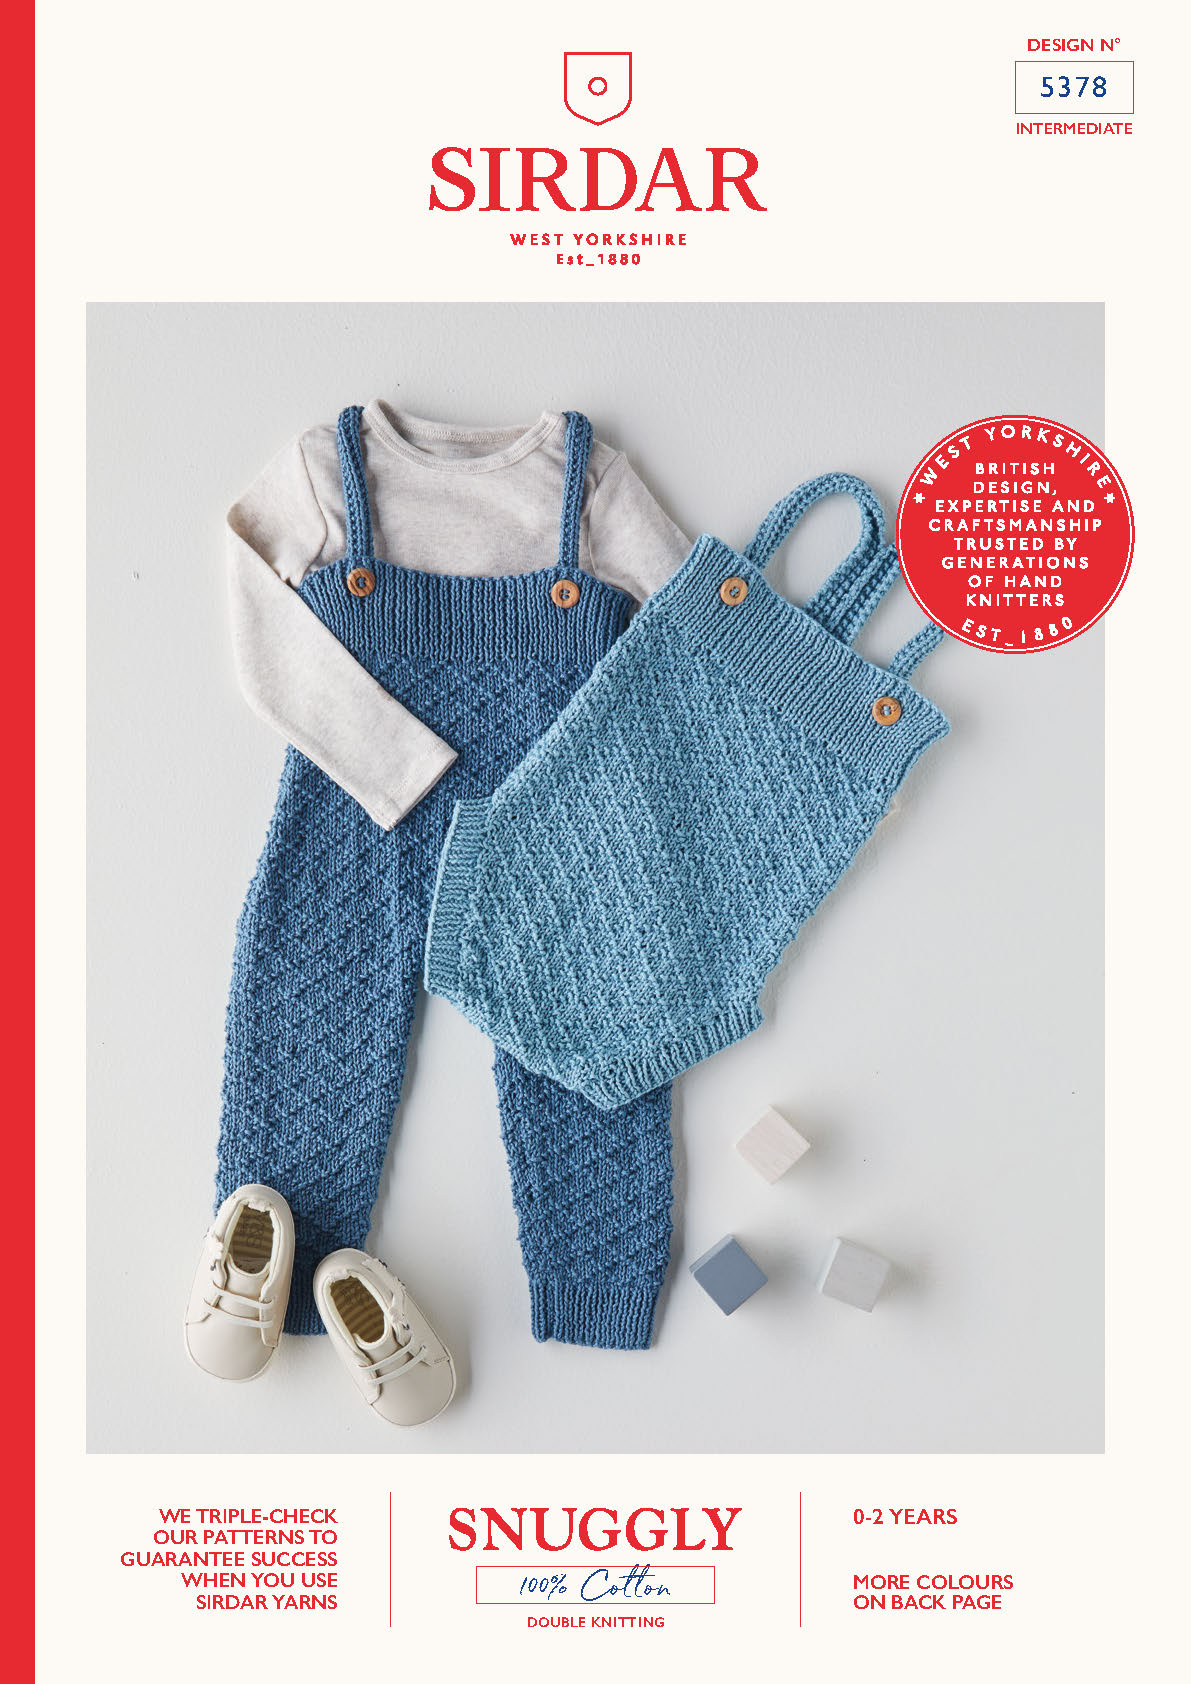 Sirdar Pattern Snuggly 100% Cotton DK 5378 (Download) product image